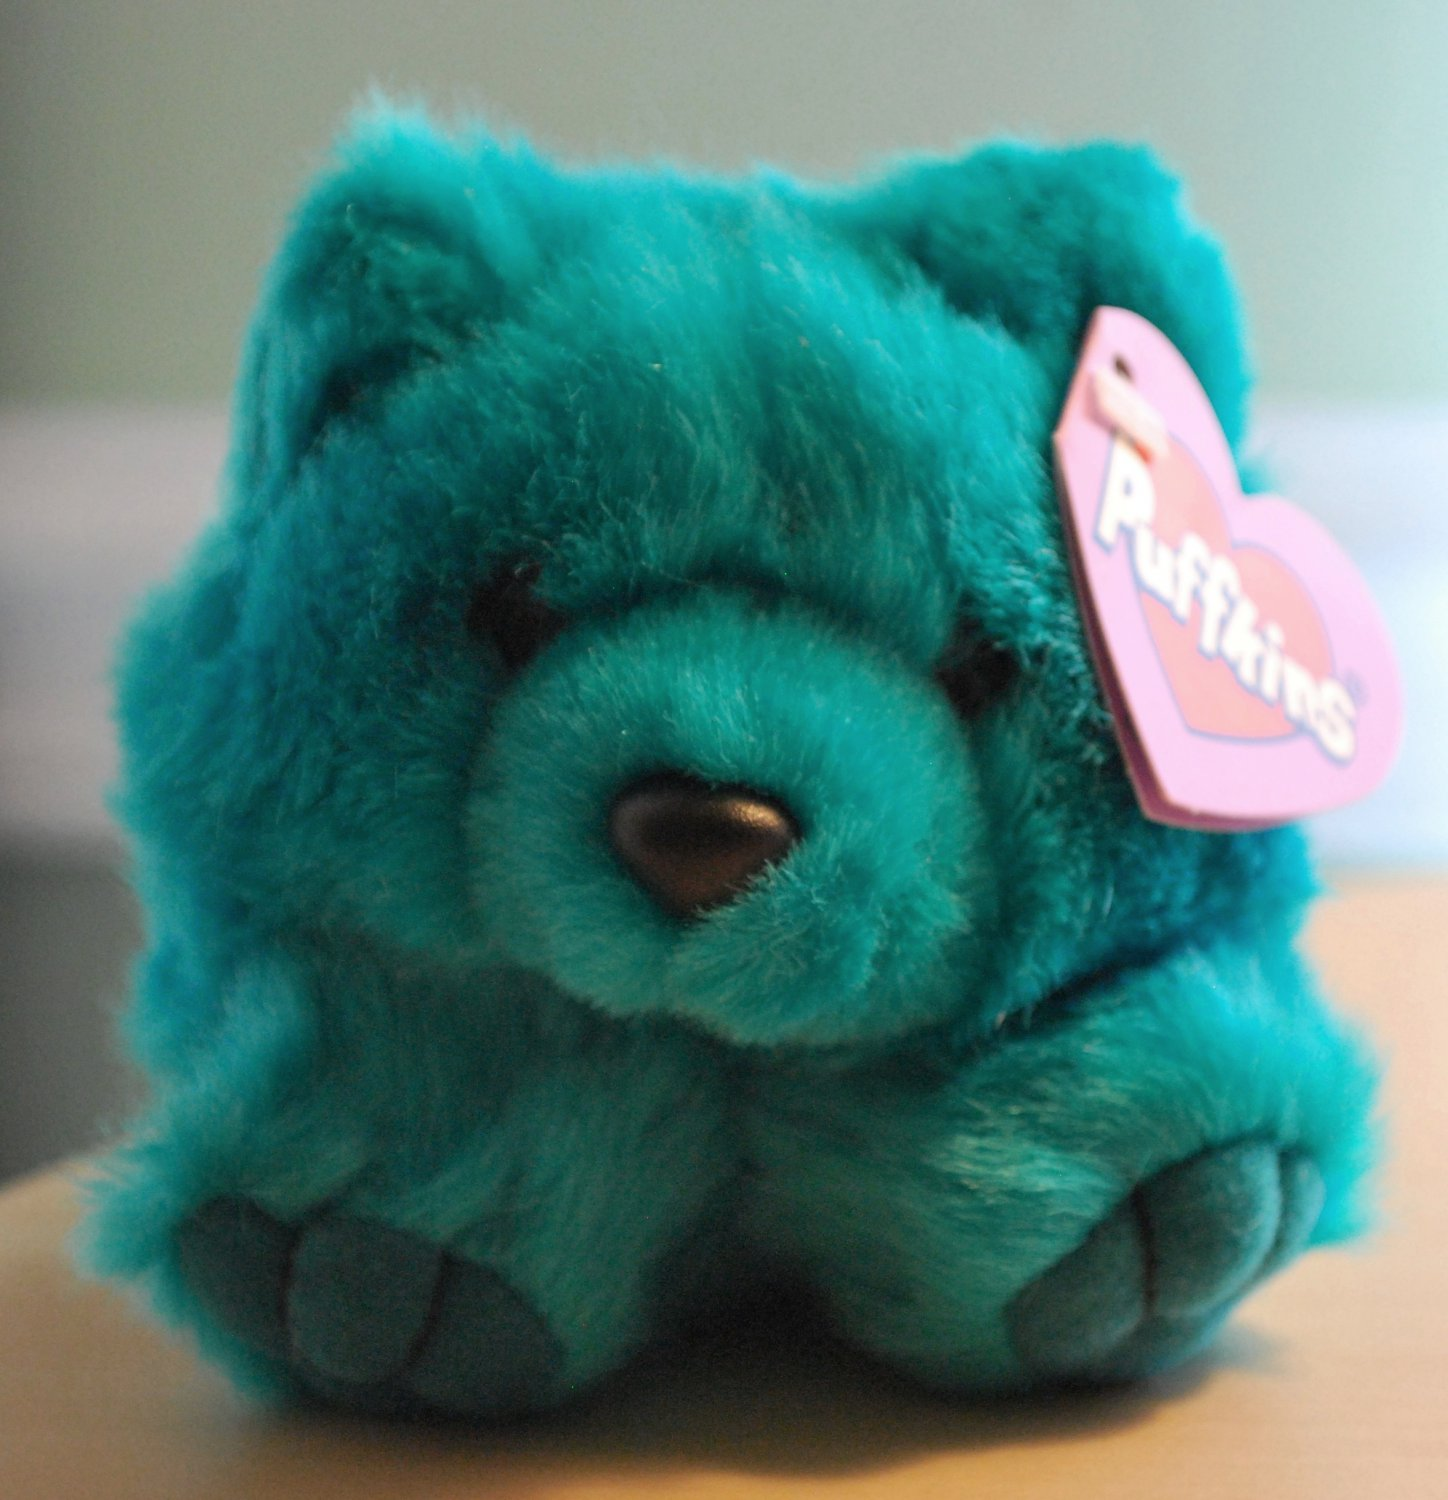 Telly the Teal Plush Puffkins Bear by Swibco Style 6673